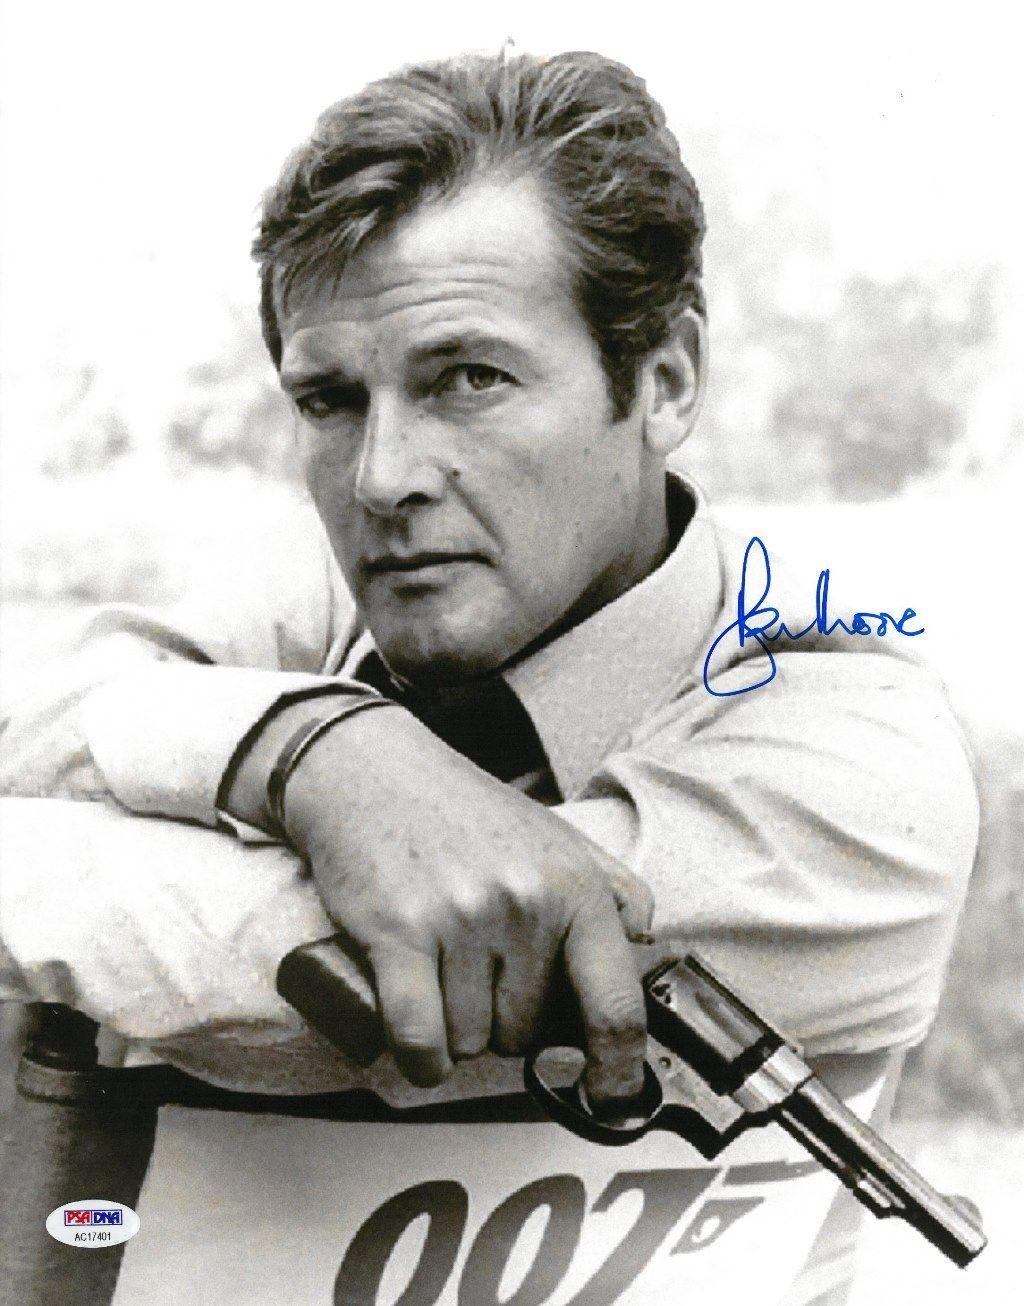 Roger Moore Signed James Bond Autographed 11x14 B/W Photo PSA/DNA #AC17401